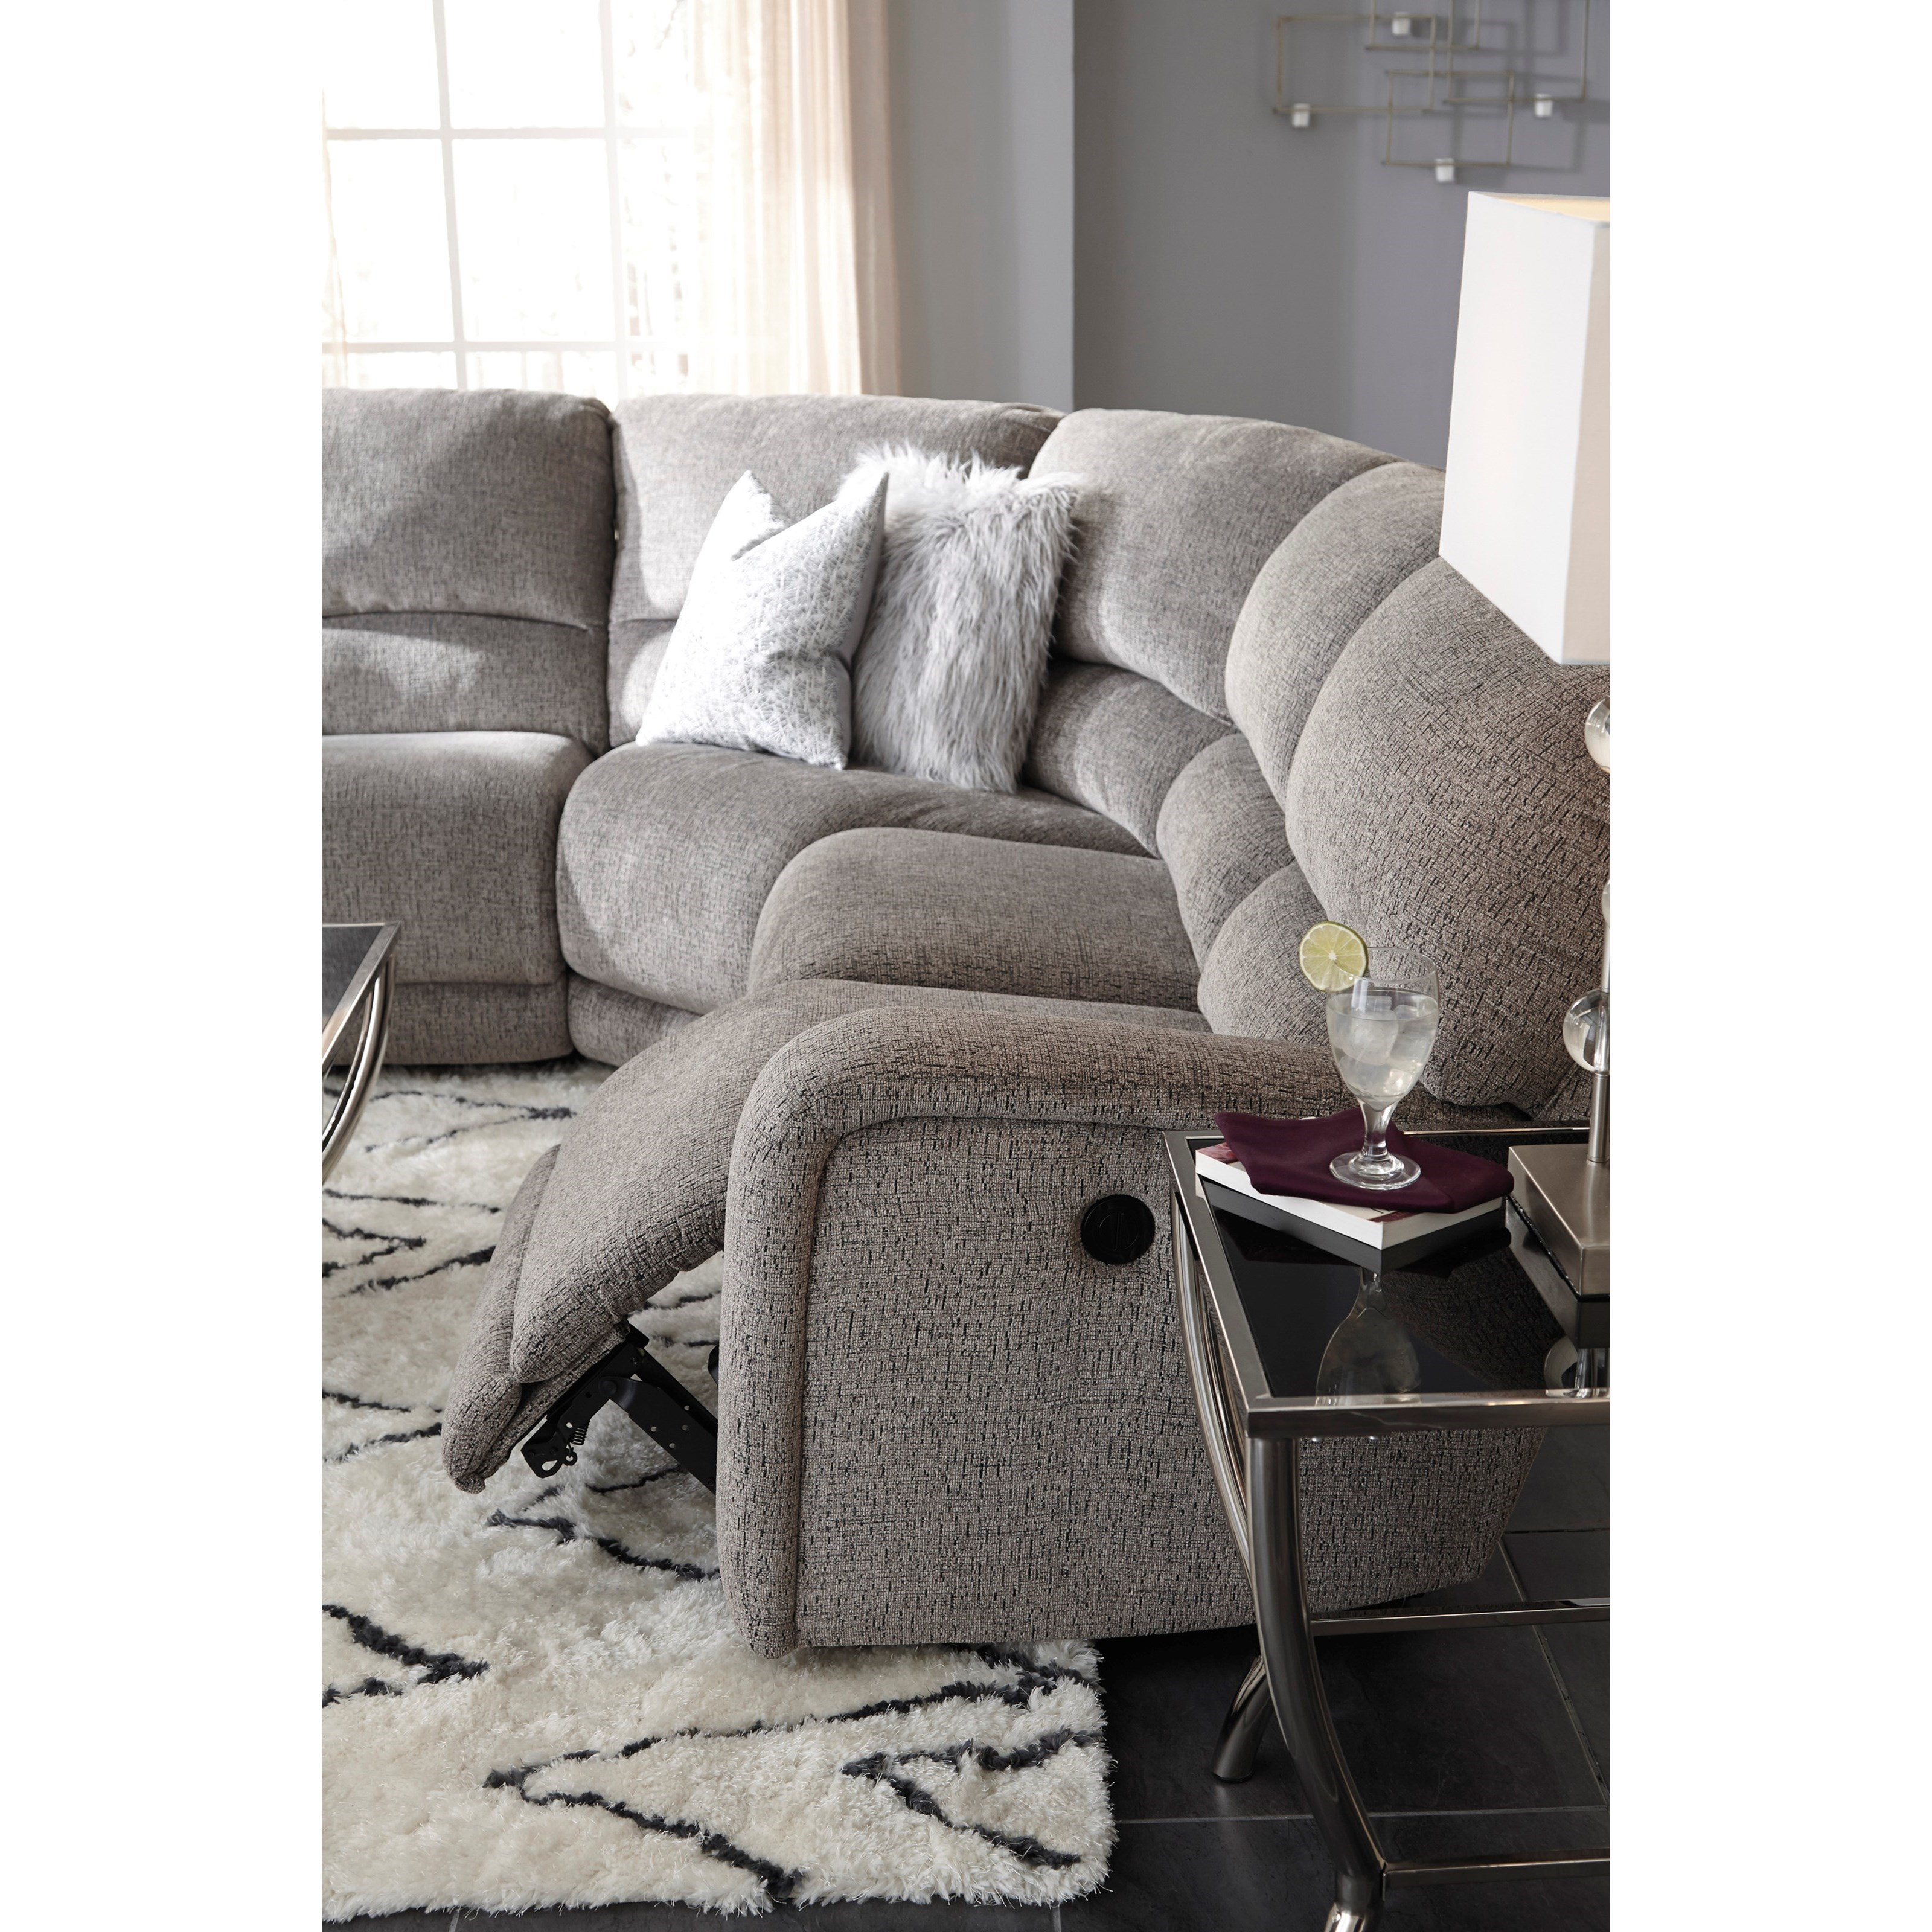 B751 Transitional Reclining Sectional With Storage Console: Del Sol AS Pittsfield Power Reclining Sectional With Left